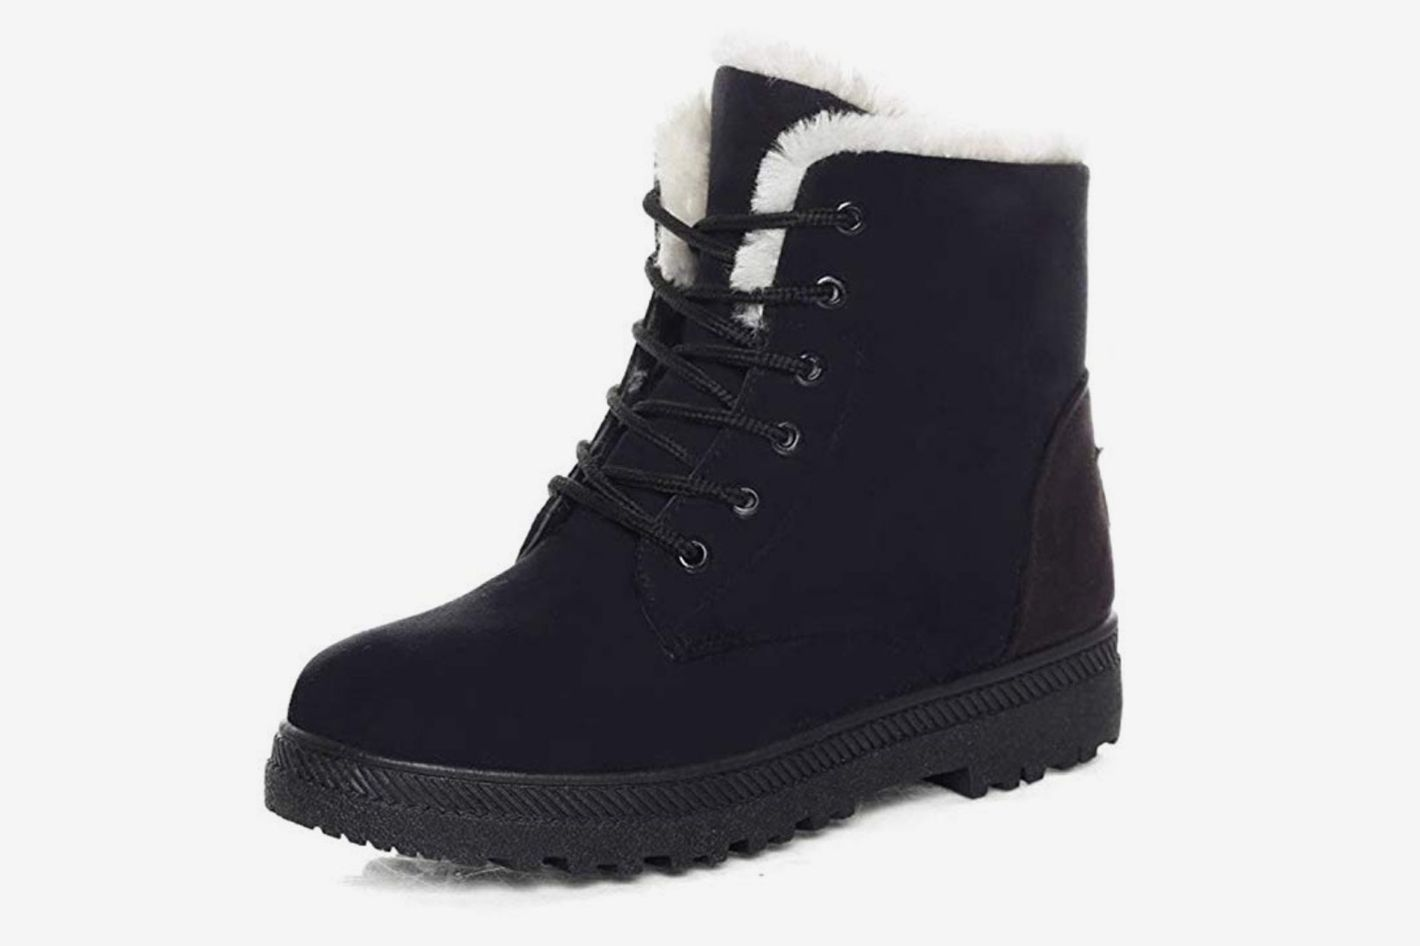 329d45b2635 DADAWEN Women s Suede Waterproof Lace Up Winter High Top Snow Boots at  Amazon